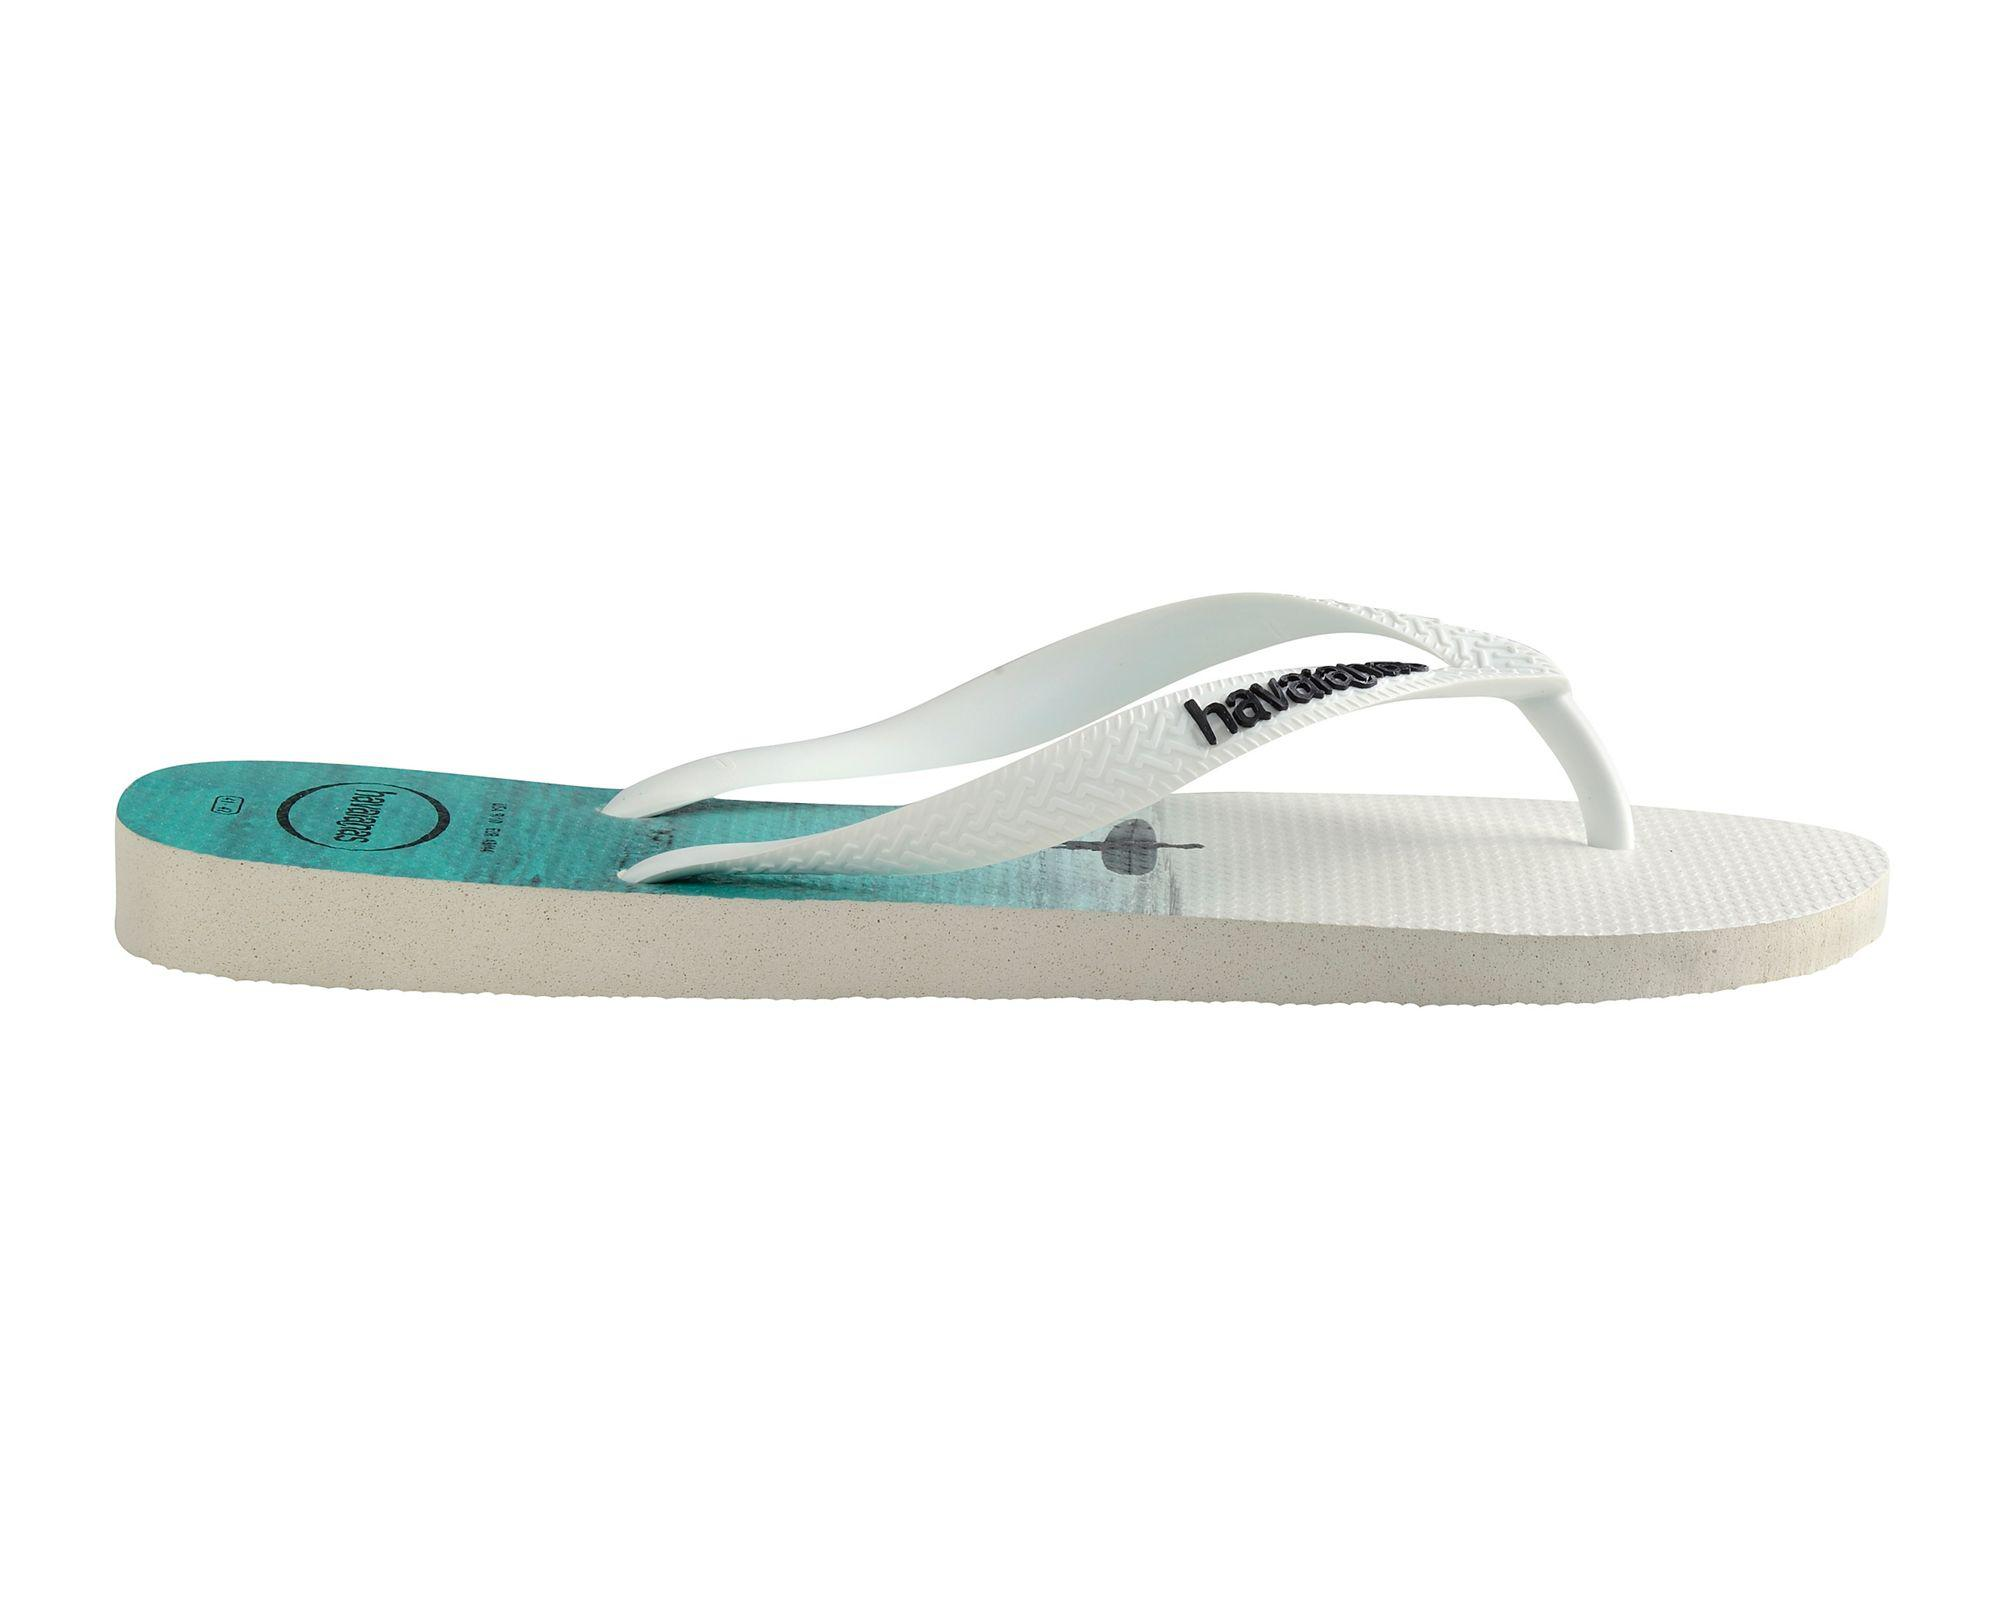 bf2b65871 Havaianas White Hype Flip Flops in White for Men - Save 68% - Lyst